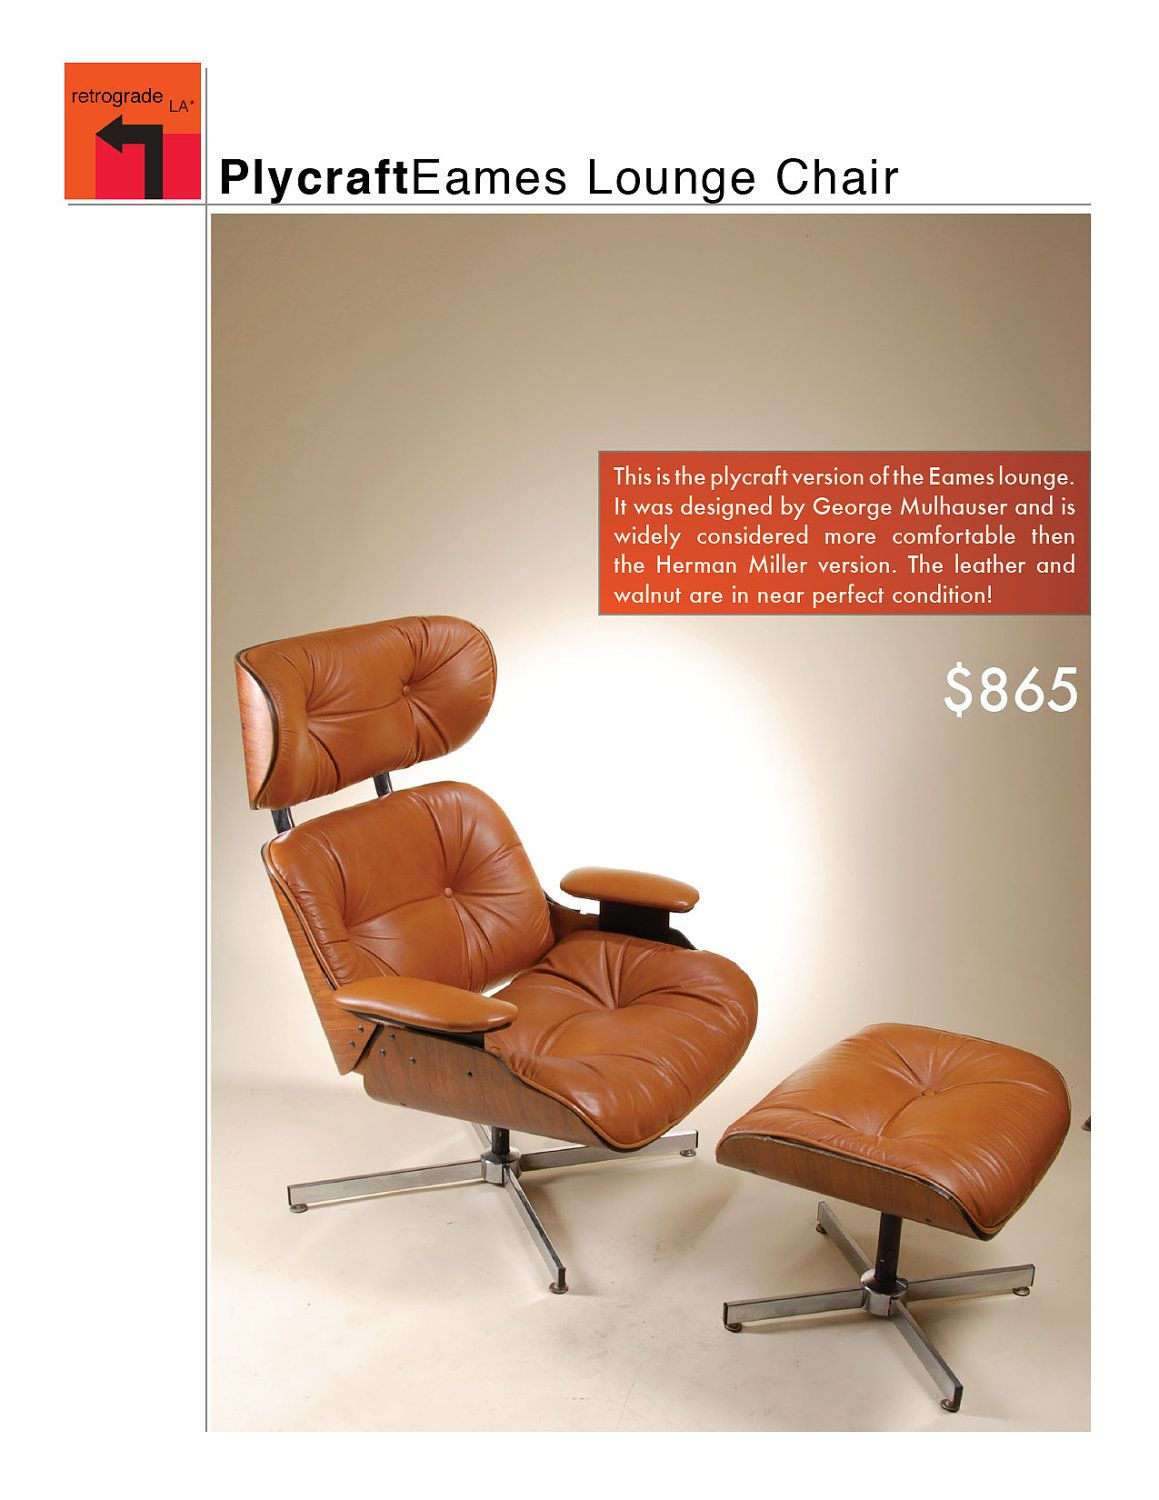 Tan Leather and Walnut Eames Lounge Chair with OttomanTan Leather and Walnut Eames Lounge Chair with Ottoman   Lounge  . Eames Lounge Chair And Ottoman Walnut Frame Standard Leather. Home Design Ideas